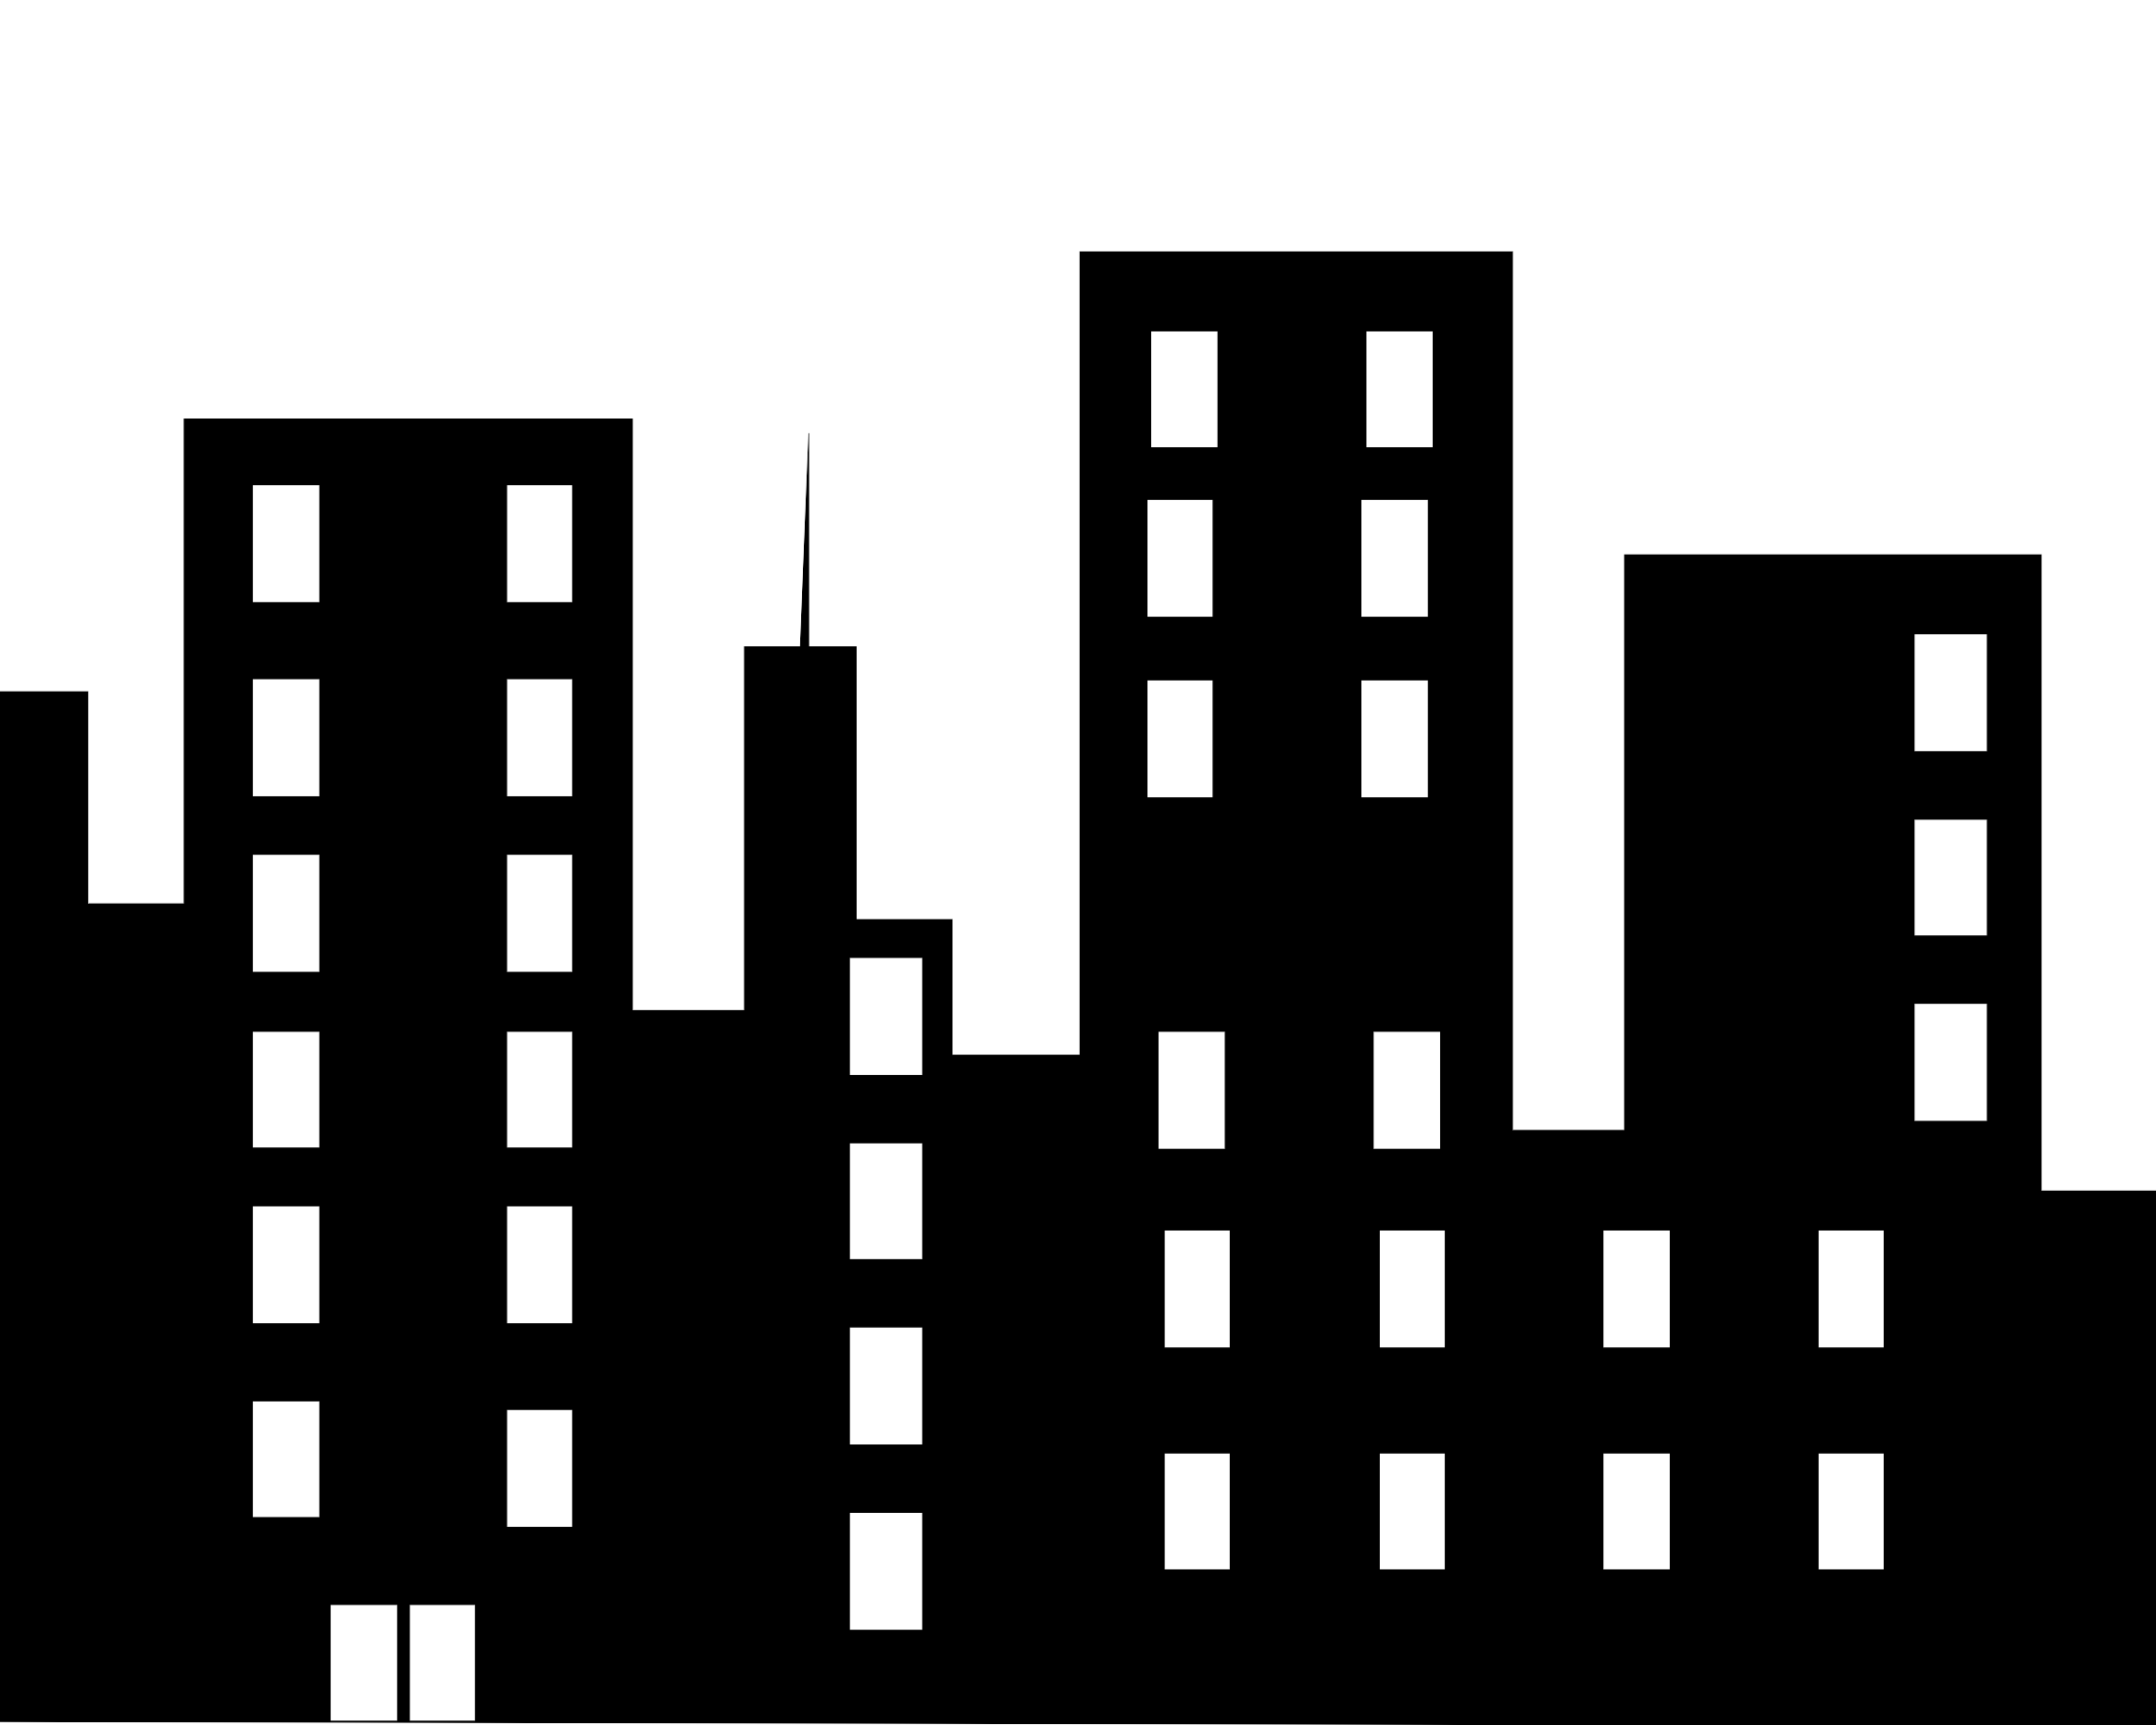 City Building Clipart Black And White Png 1 Png Image